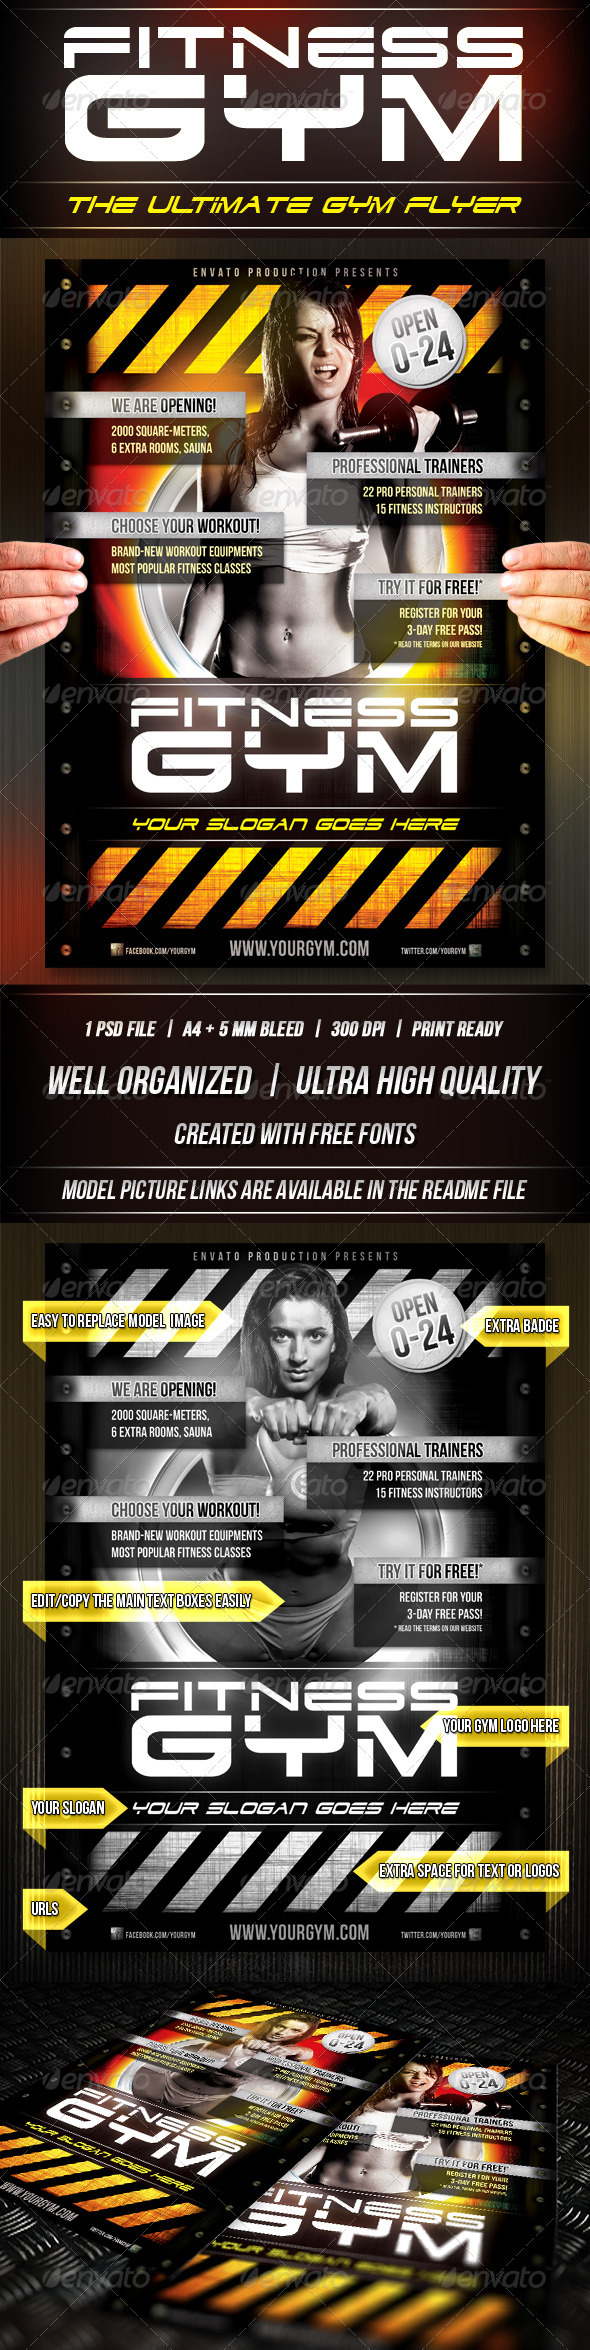 Fitness Gym Flyer Template - Sports Events